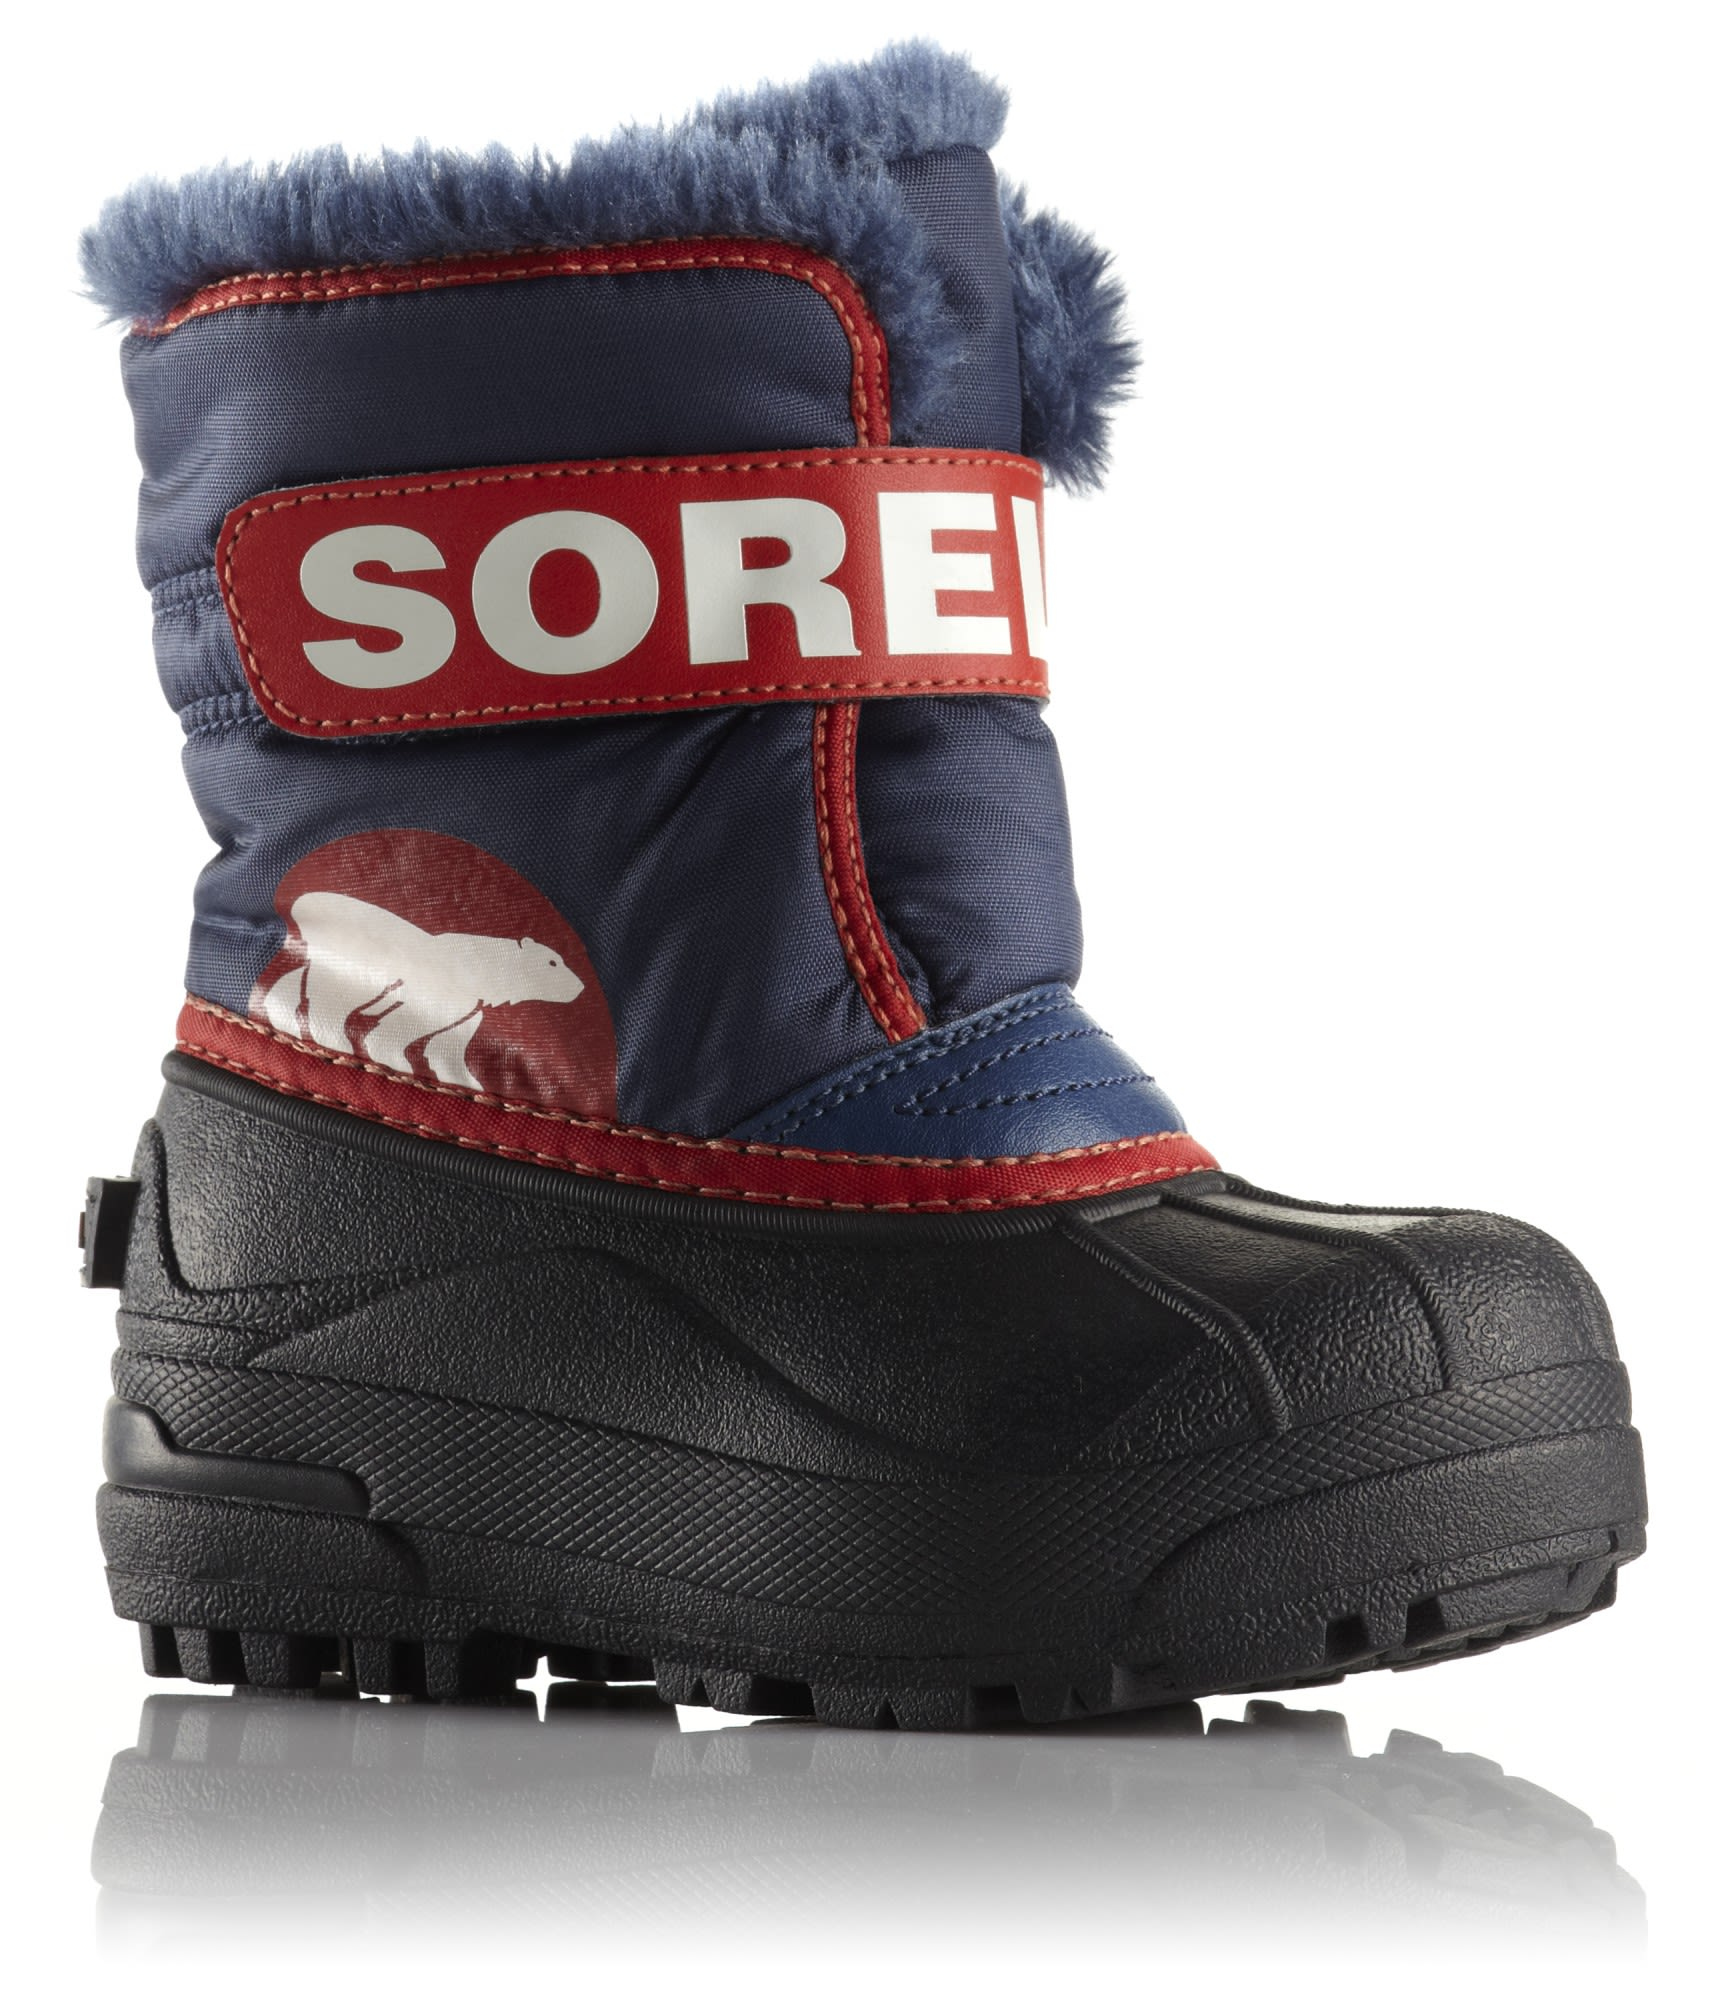 Sorel Kids Snow Commander | Größe US 4 / UK 3 / EU 21,US 5 / UK 4 / EU 22,US 7